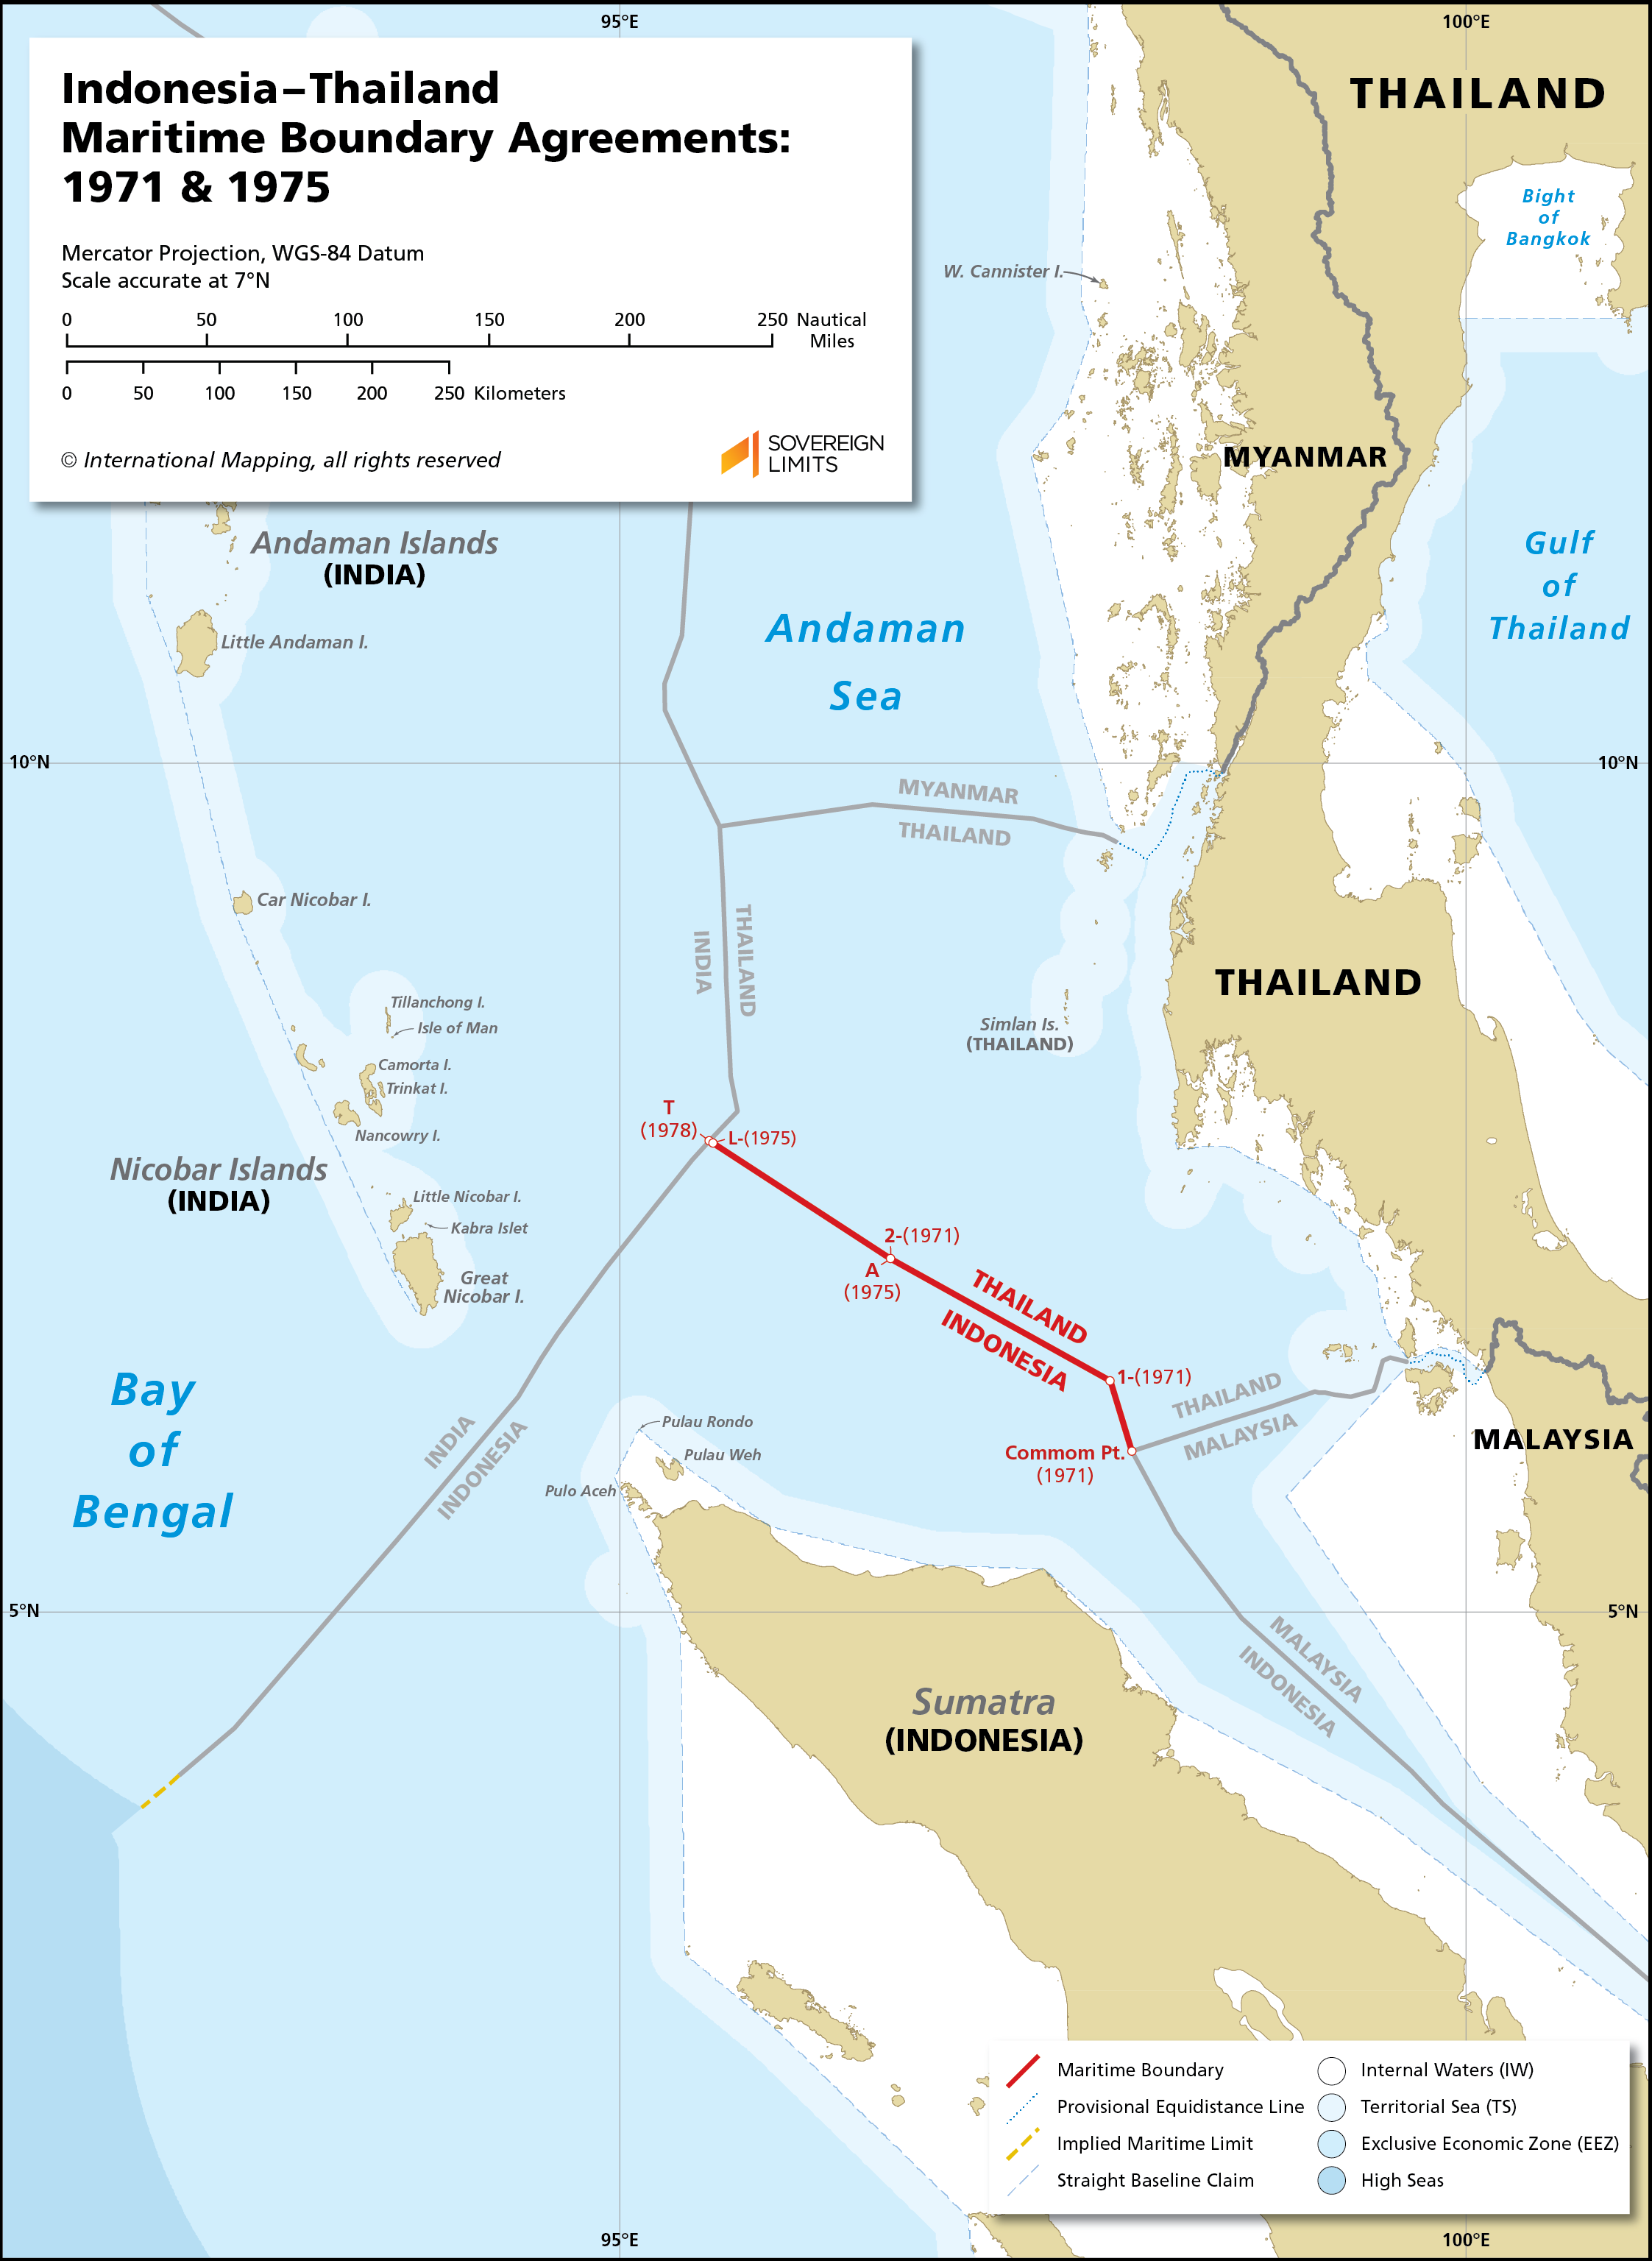 Map showing the maritime boundary between Indonesia and Thailand